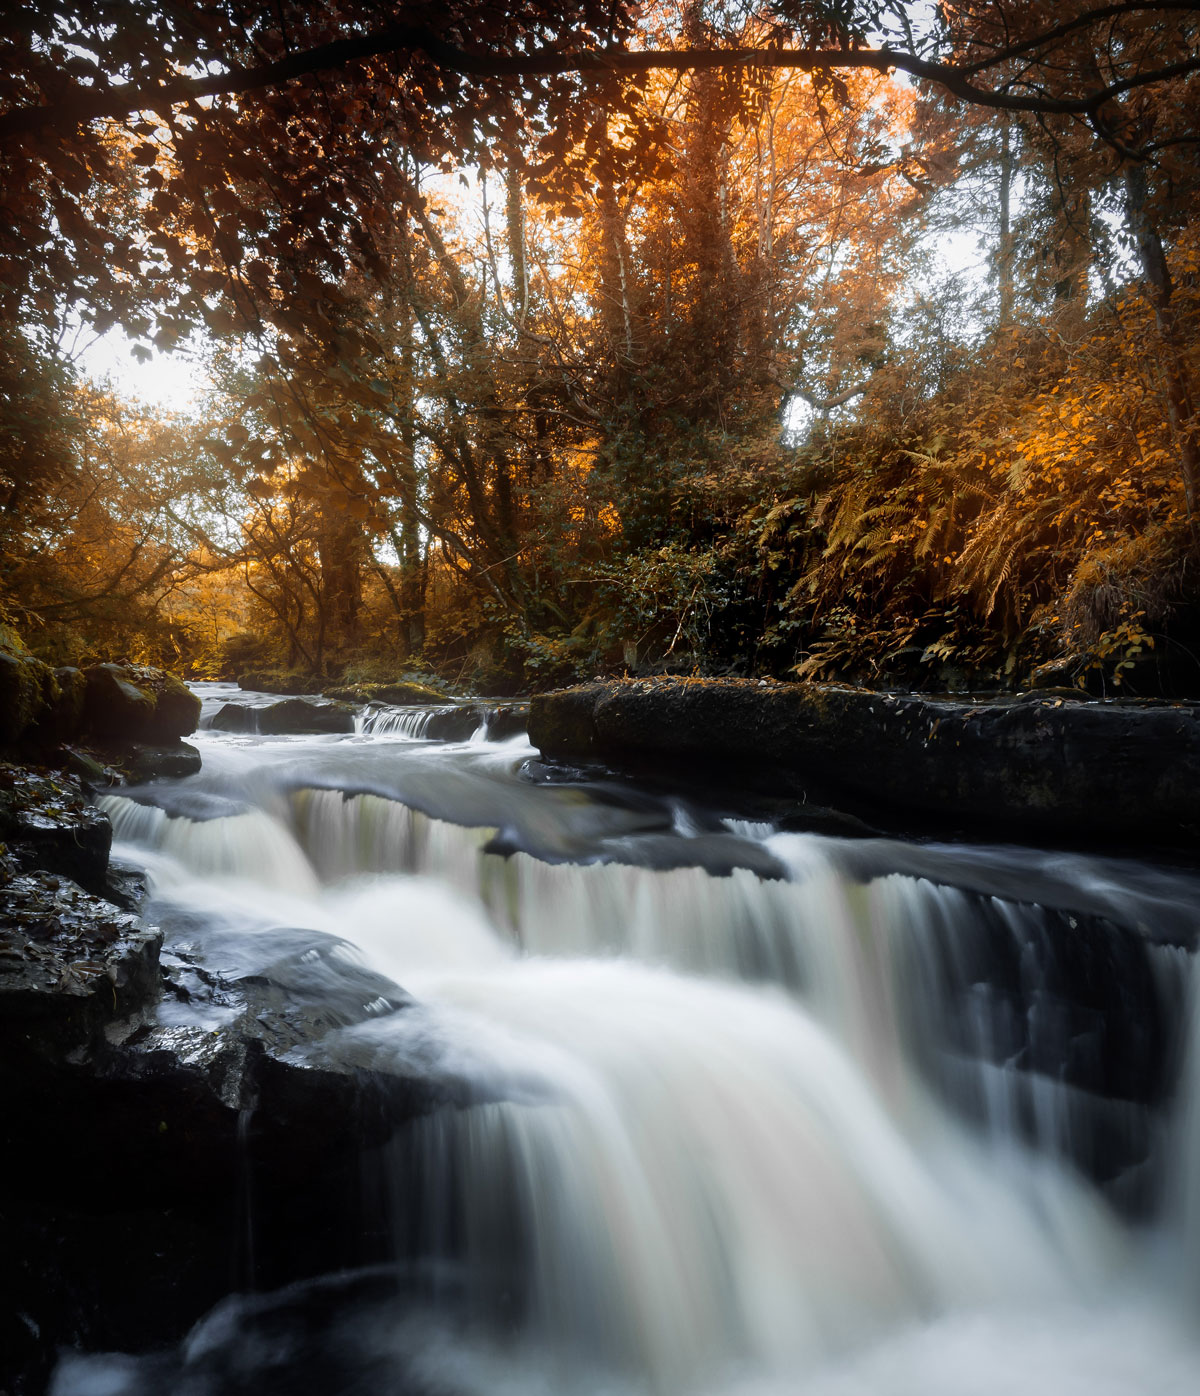 Autumn-in-Ireland-resized.jpg